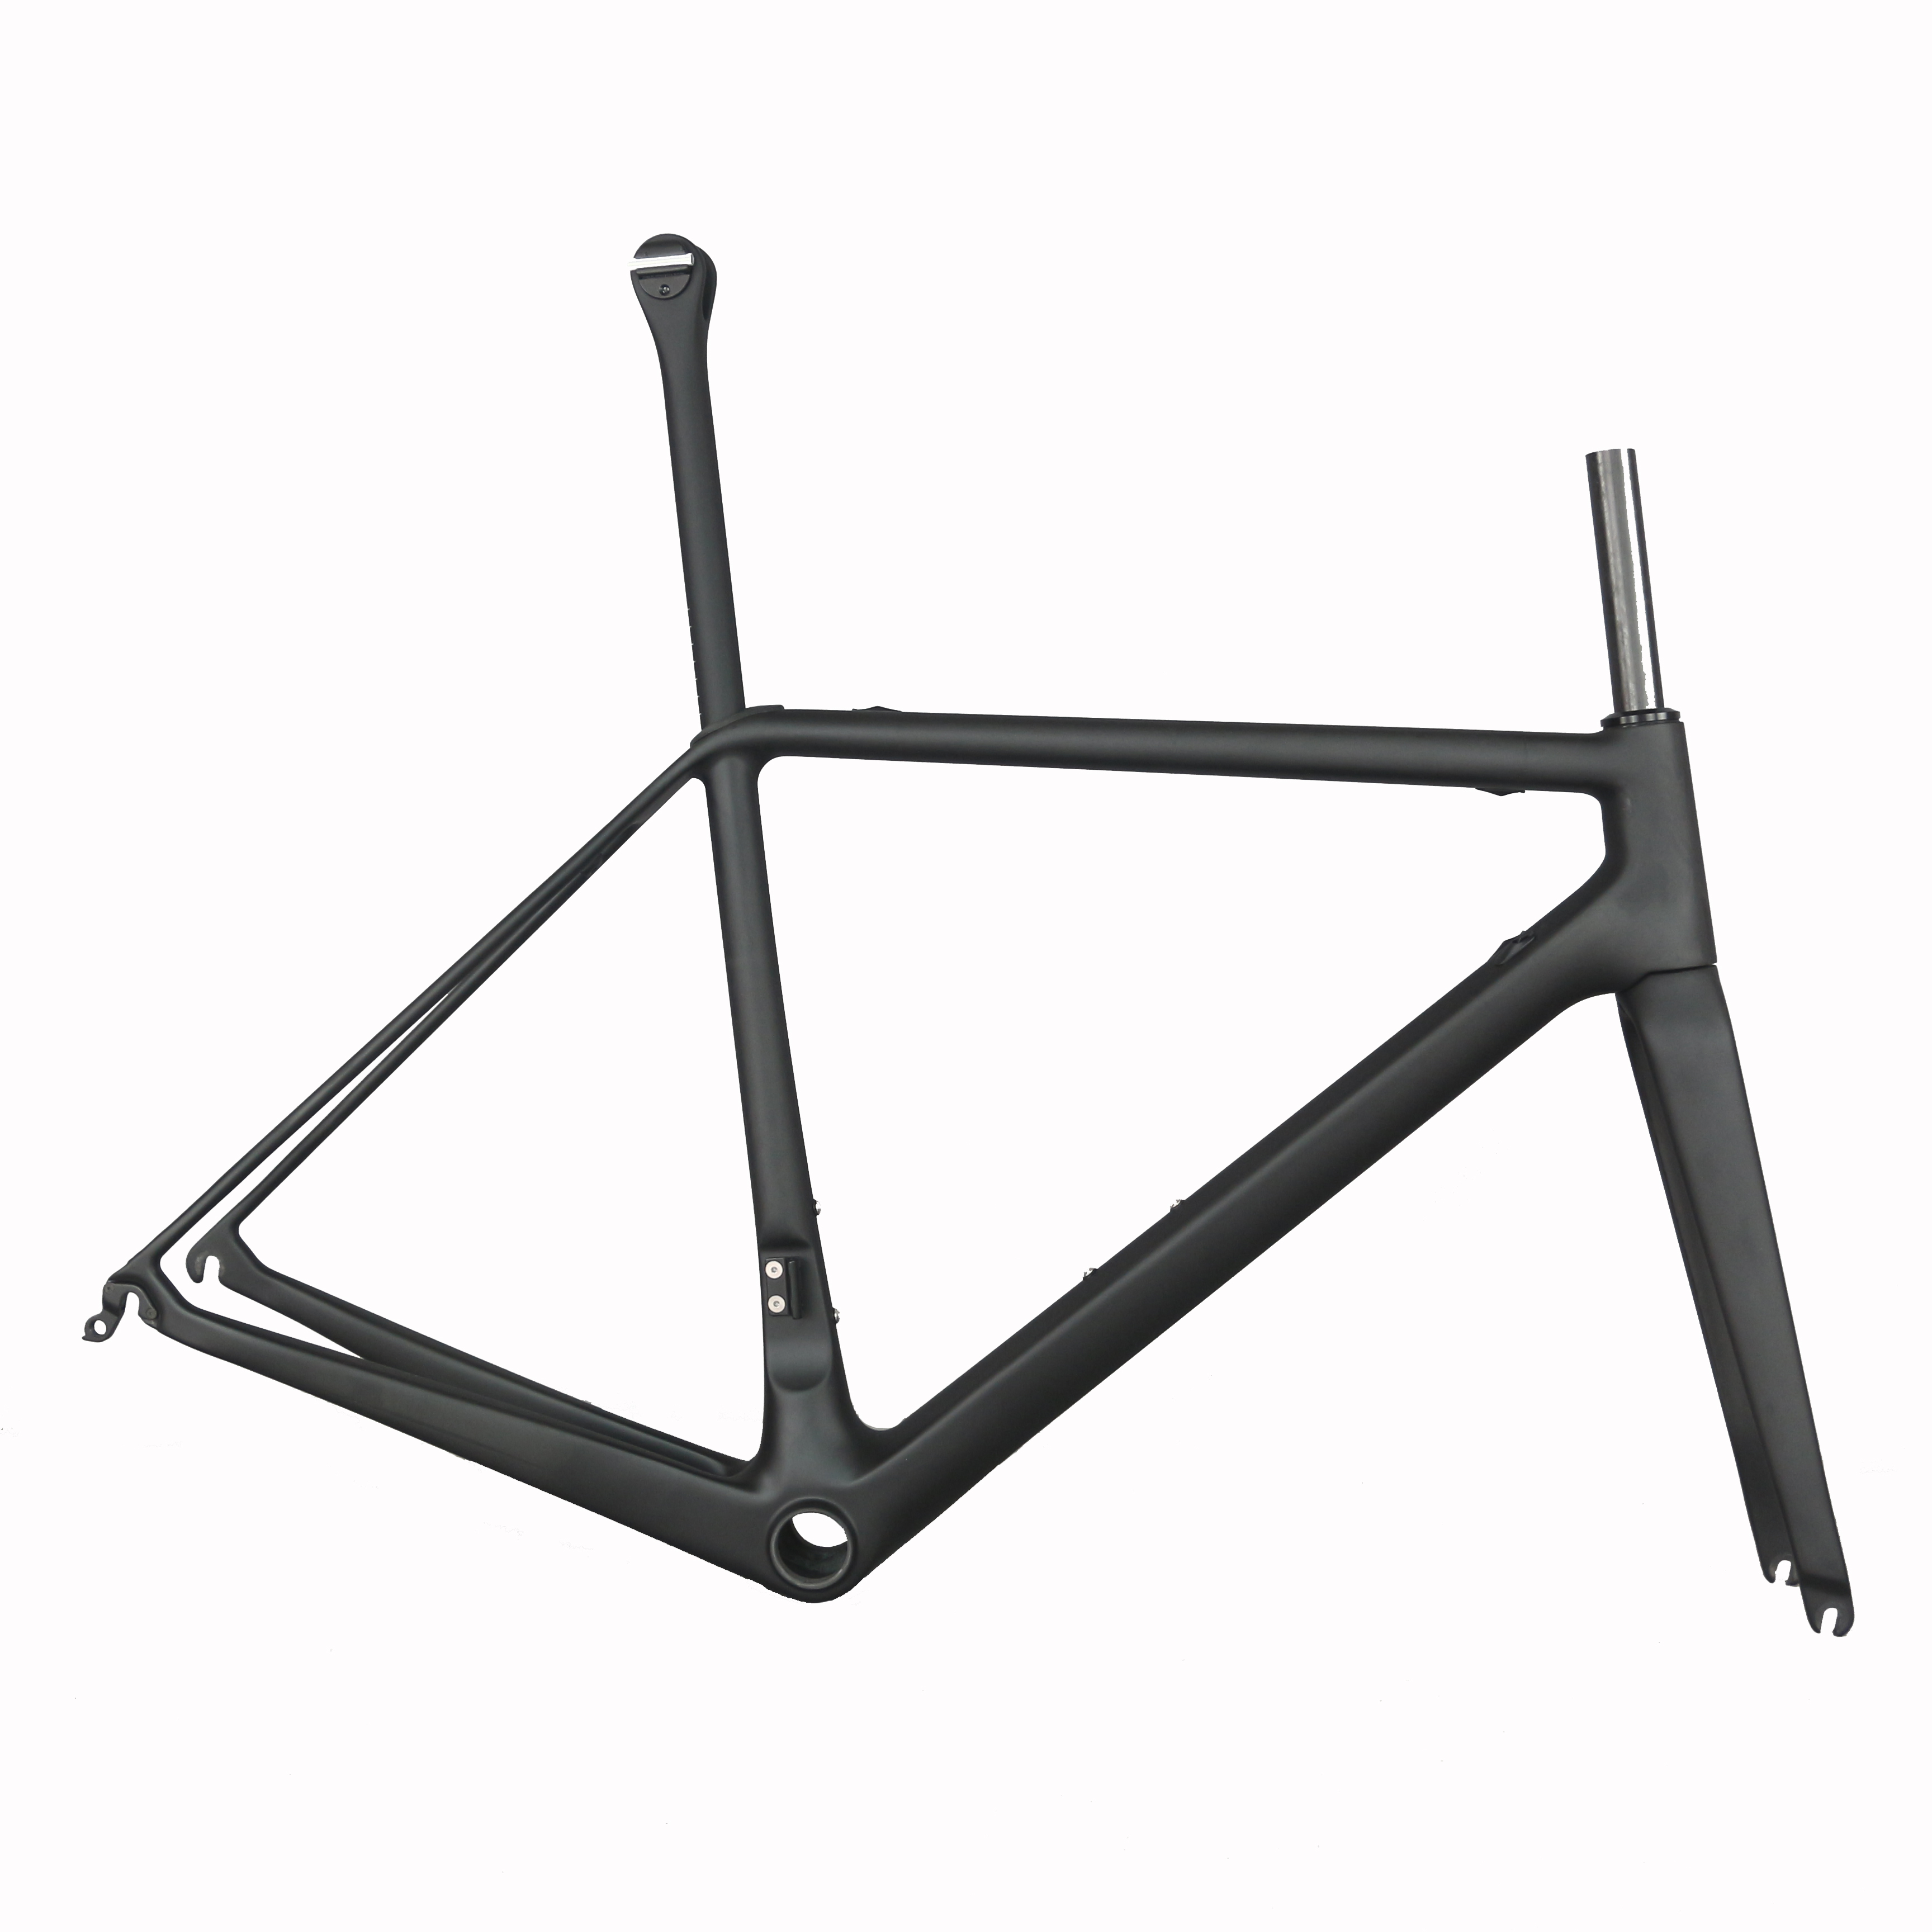 Superlight Road Frame New EPS Technology Toray Carbon T1000 Fiber Max Tire Size 25C All Internal Cable Road Bicycle Frame  FM609